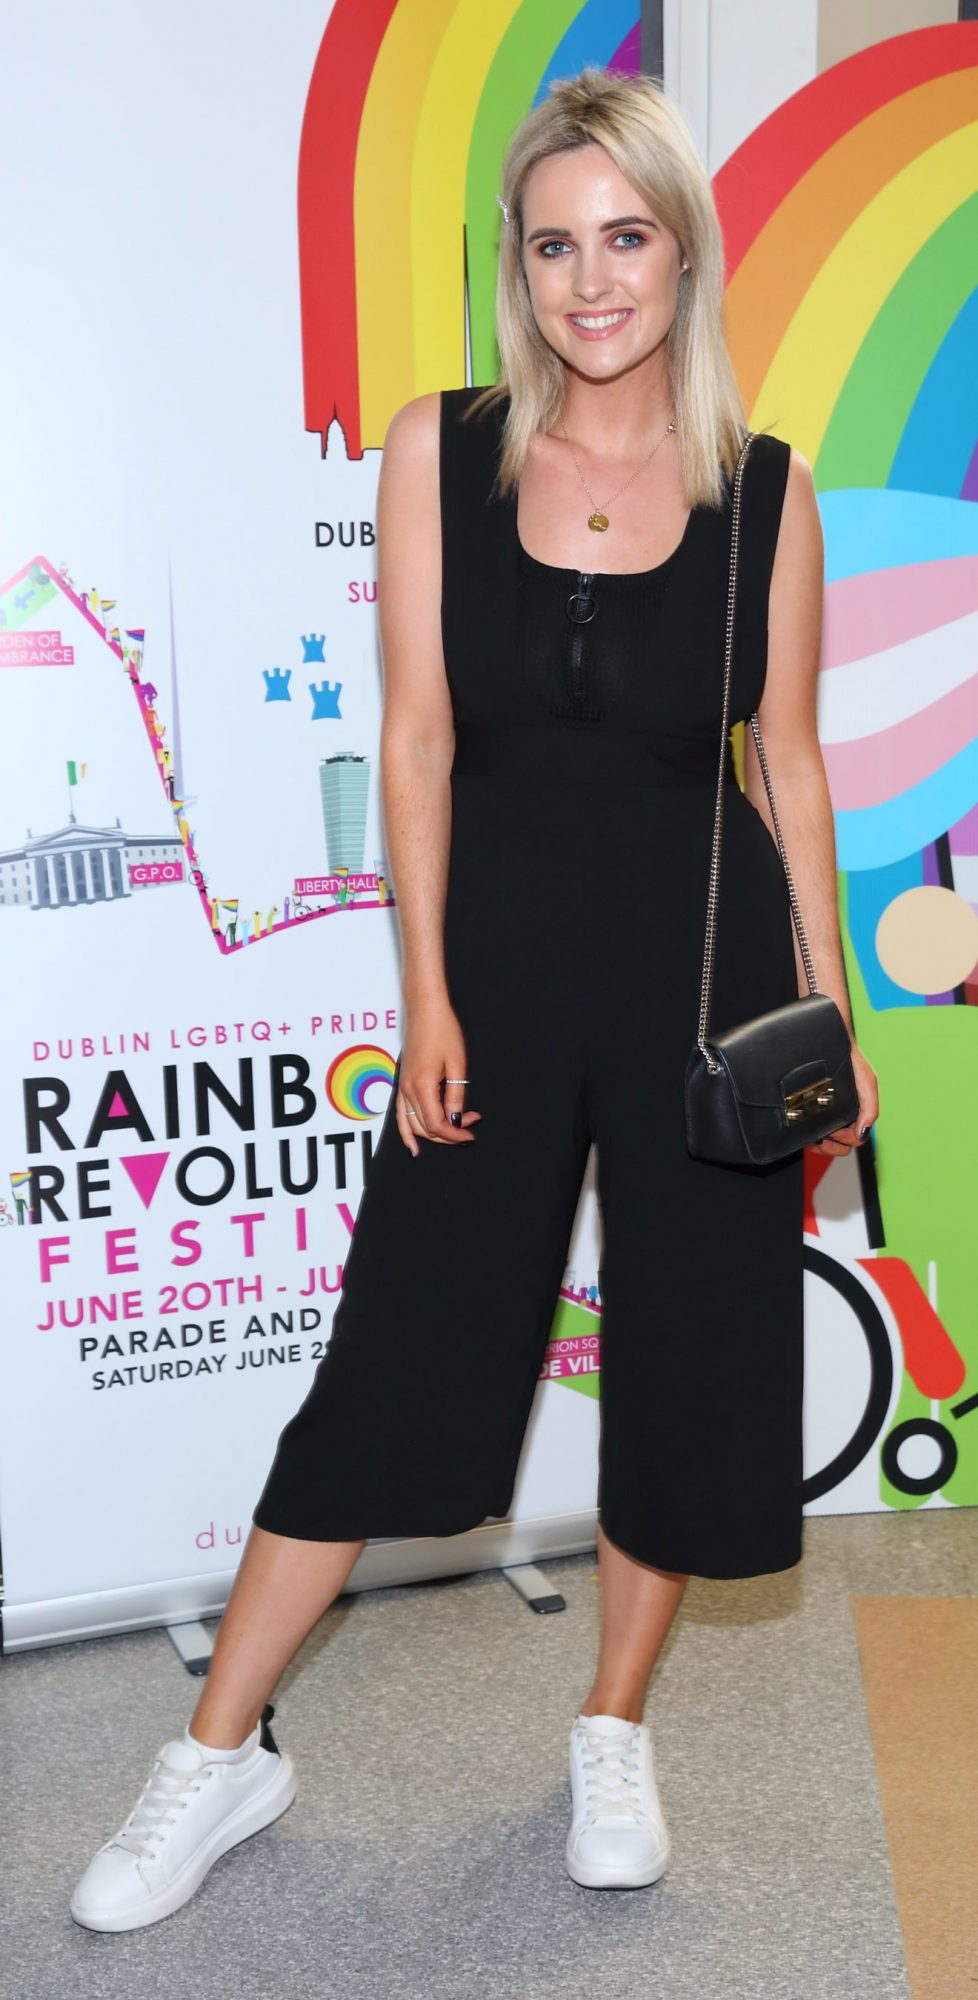 Lorna Duffy pictured at the launch of the Dublin LGBTQ+ Pride Festival 2019 in partnership with platinum sponsor Tesco at the GPO, Dublin. Picture: Brian McEvoy Photography